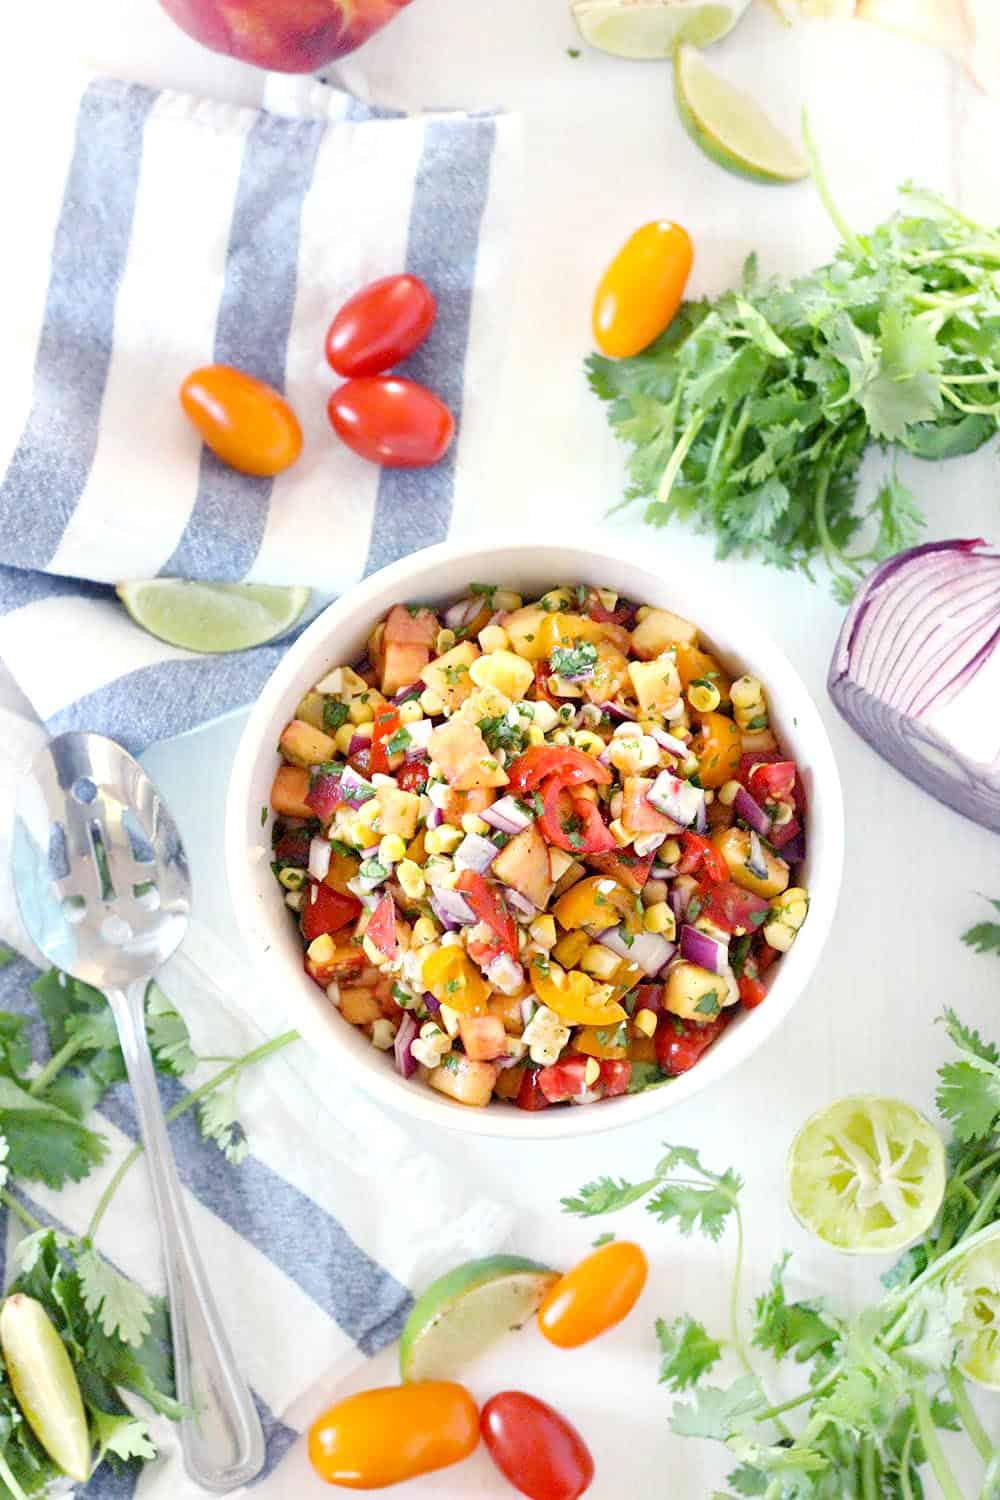 Full of fresh summer ingredients, this mild, simple summer peach salsa is great on chips, on tacos, on fish... it's slightly sweet, tangy, and pairs well with spicy, warm flavors. It's healthy, gluten-free, vegan, raw, and low-fat, and it's mild flavor makes it kid friendly.